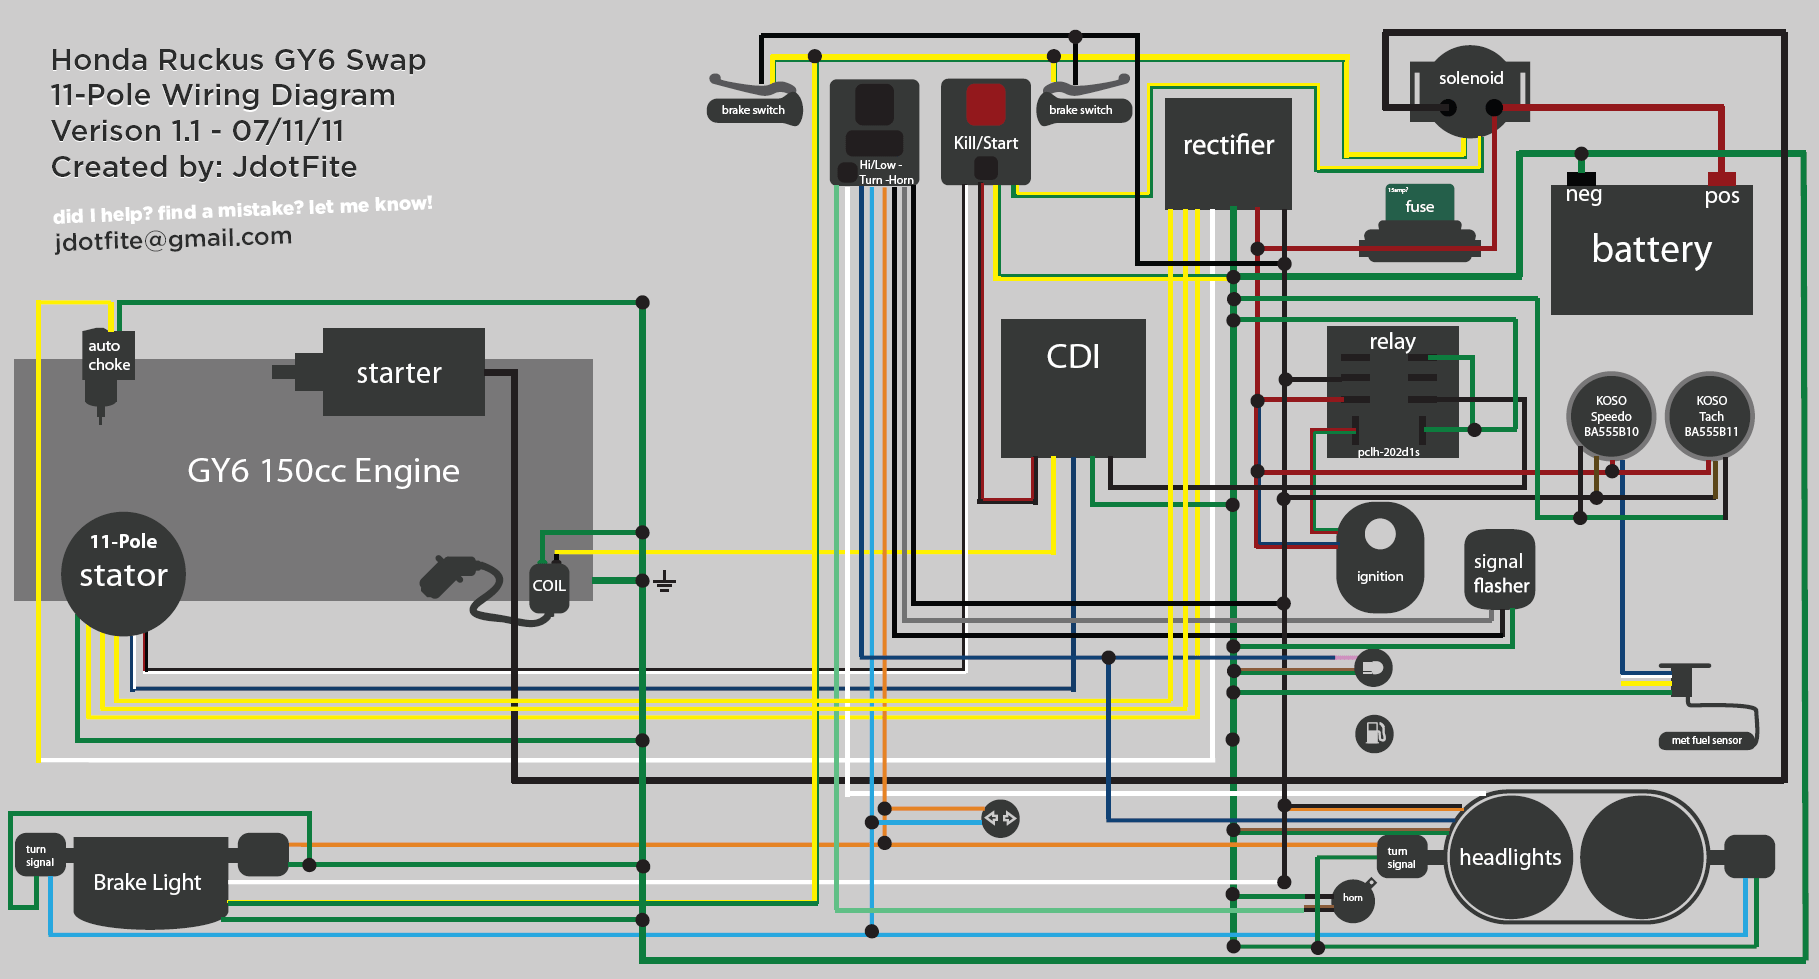 ruckus gy6 wiring diagram gy6 wiring diagram gy6 wiring diagram 150cc \u2022 wiring diagrams j yerf dog go kart wiring diagram at crackthecode.co